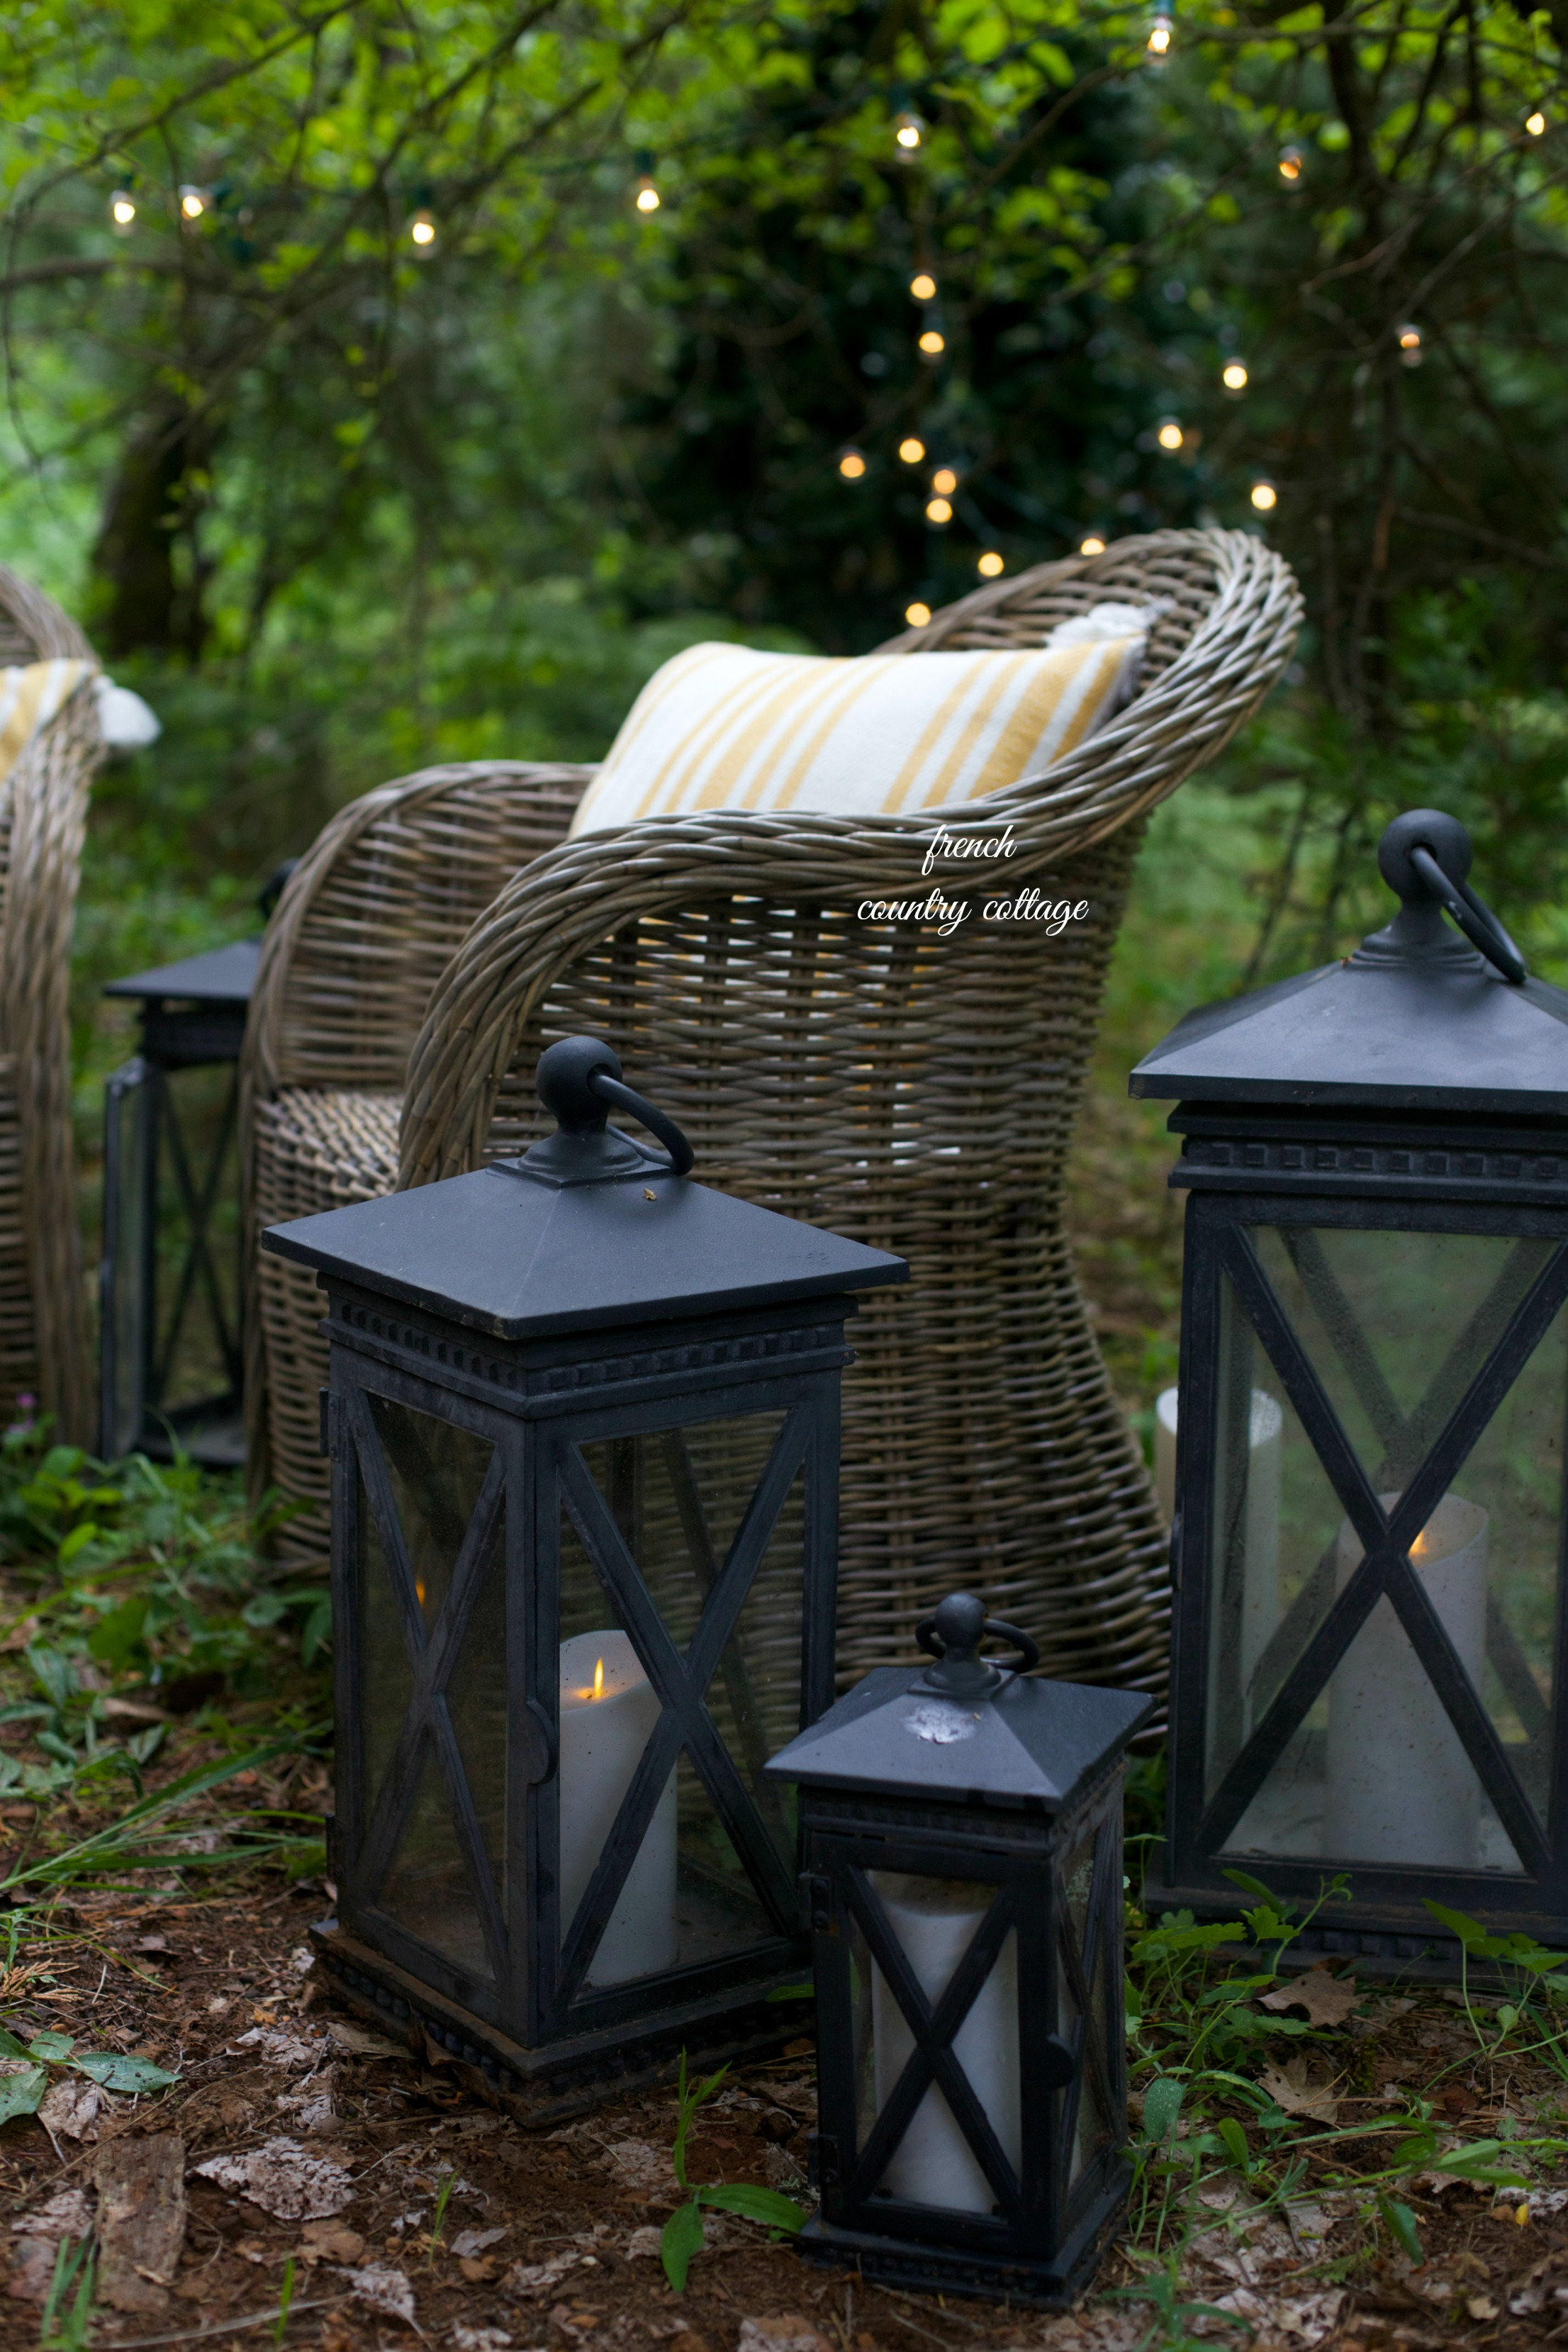 Candela Crossbar Lanterns and LED Candles add to the ambiance